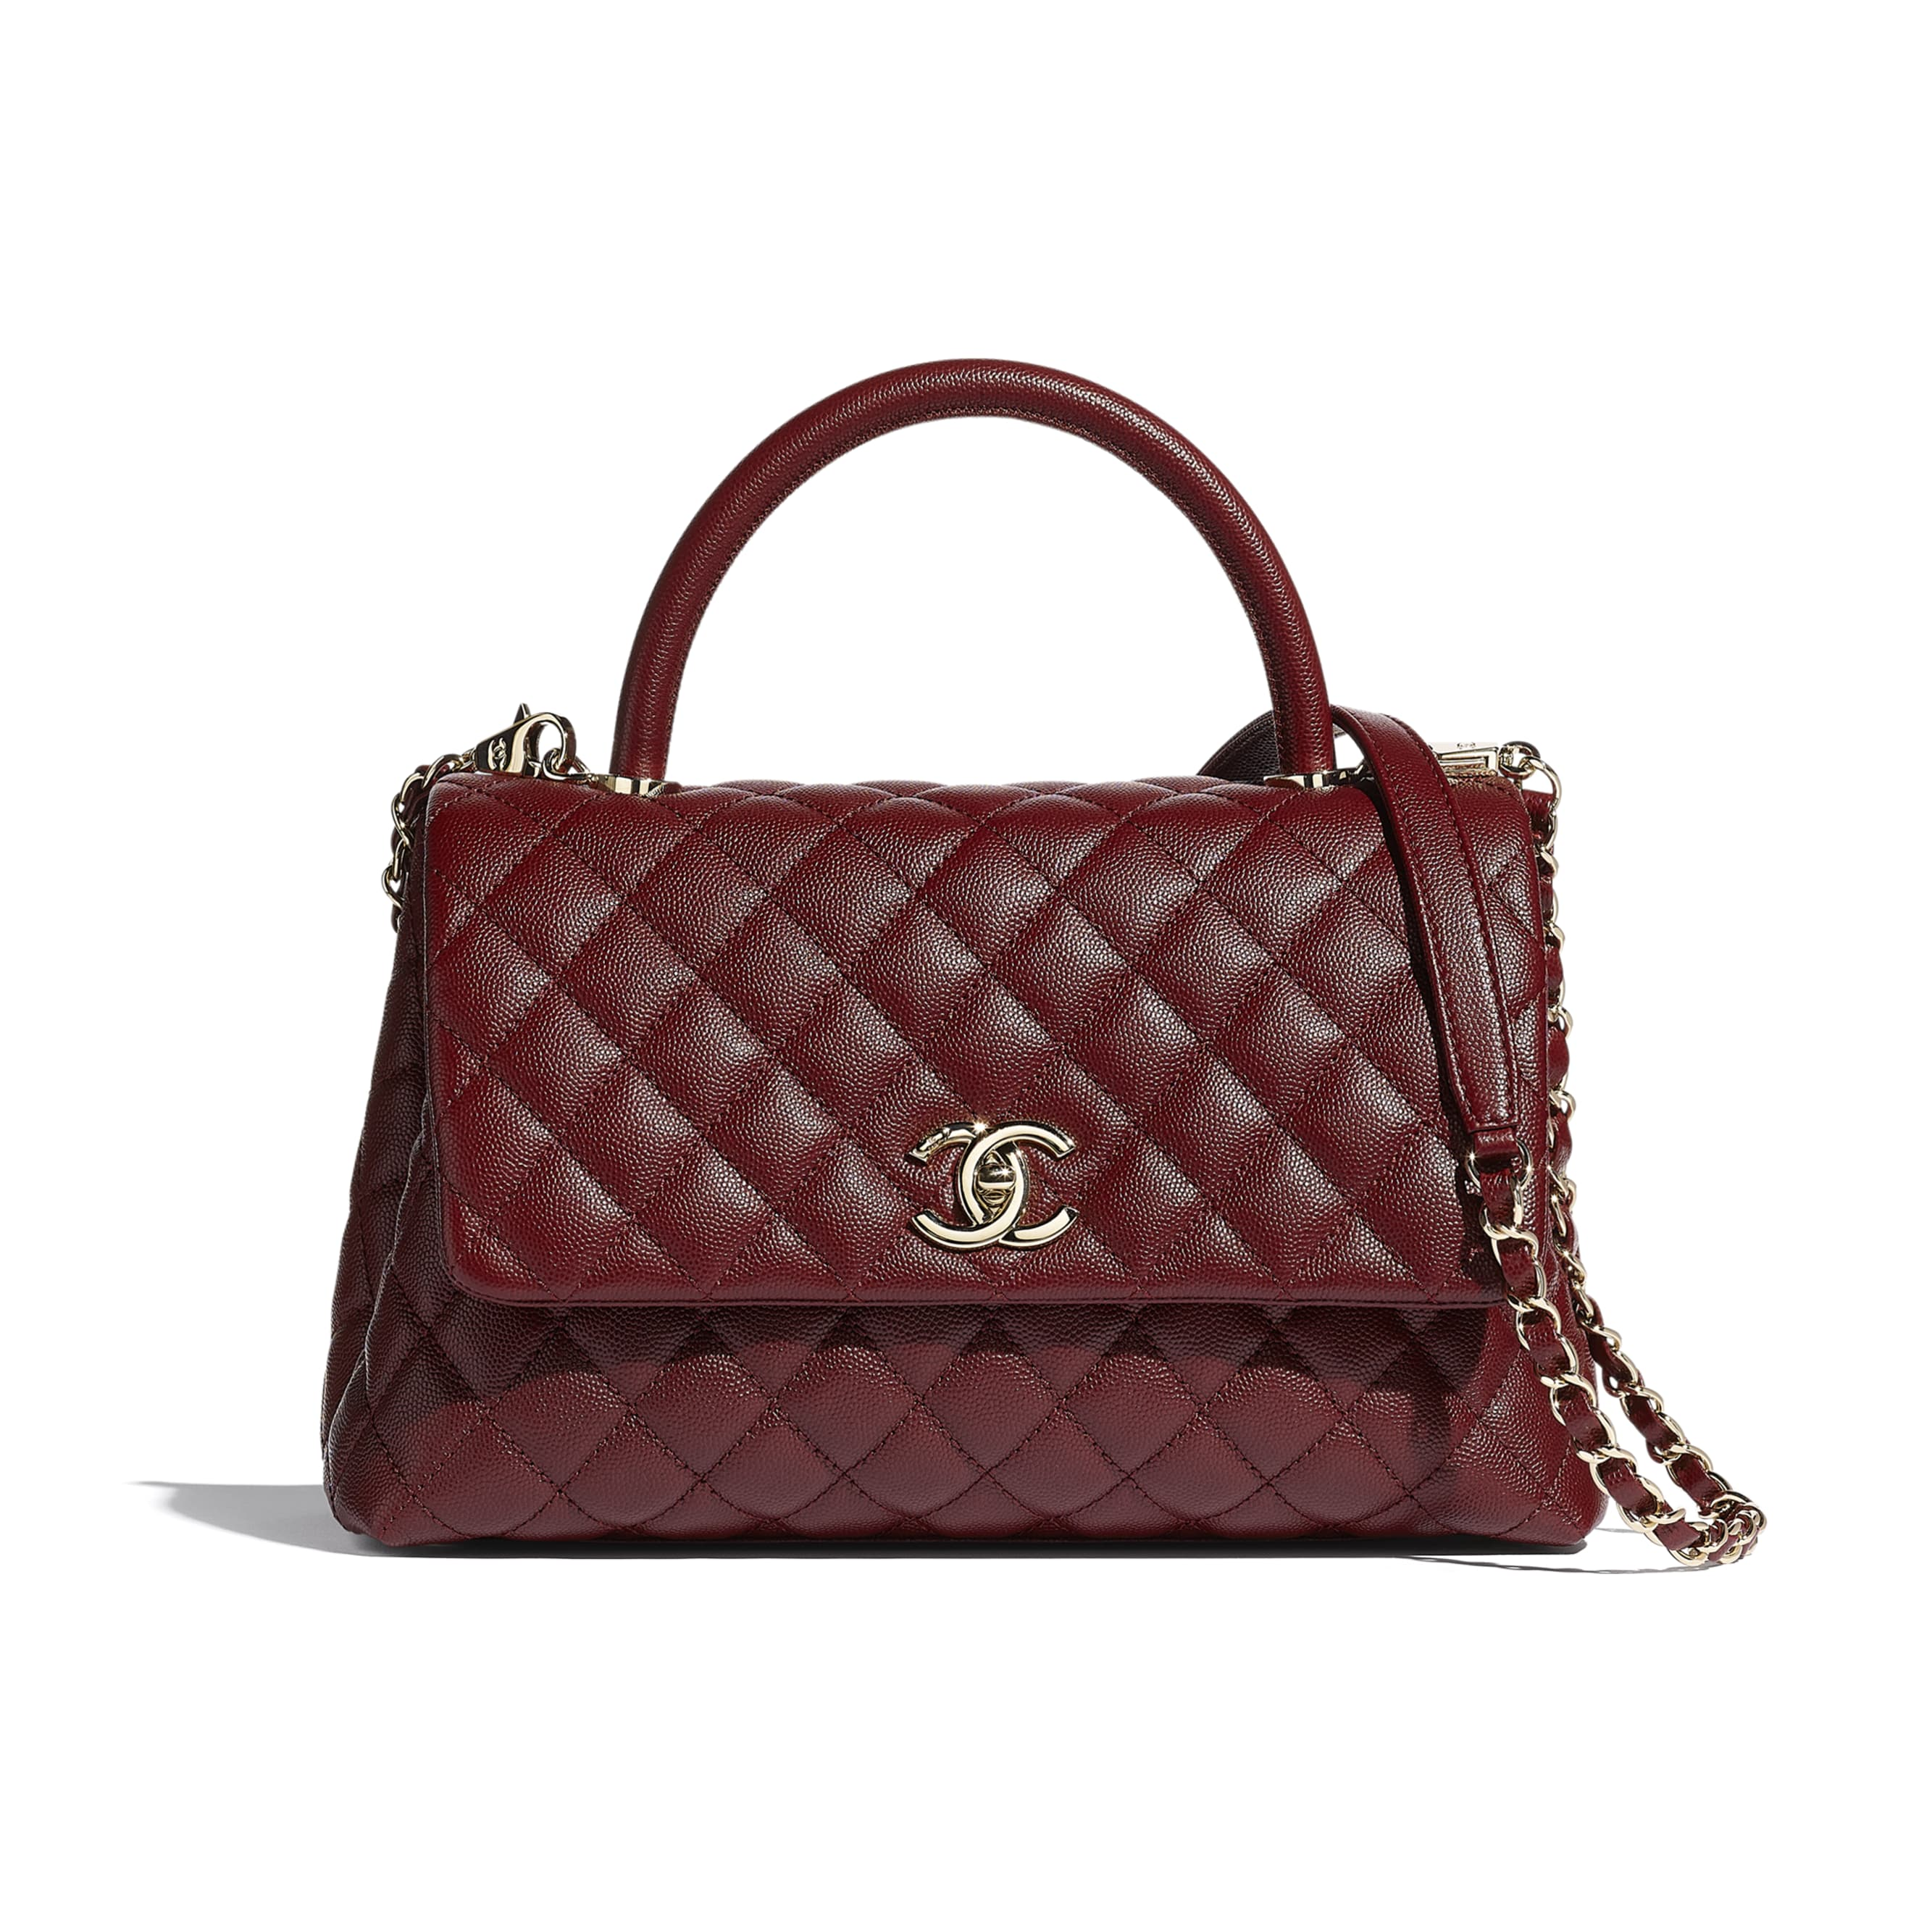 Flap Bag With Top Handle - Burgundy - Grained Calfskin & Gold-Tone Metal - CHANEL - Default view - see standard sized version